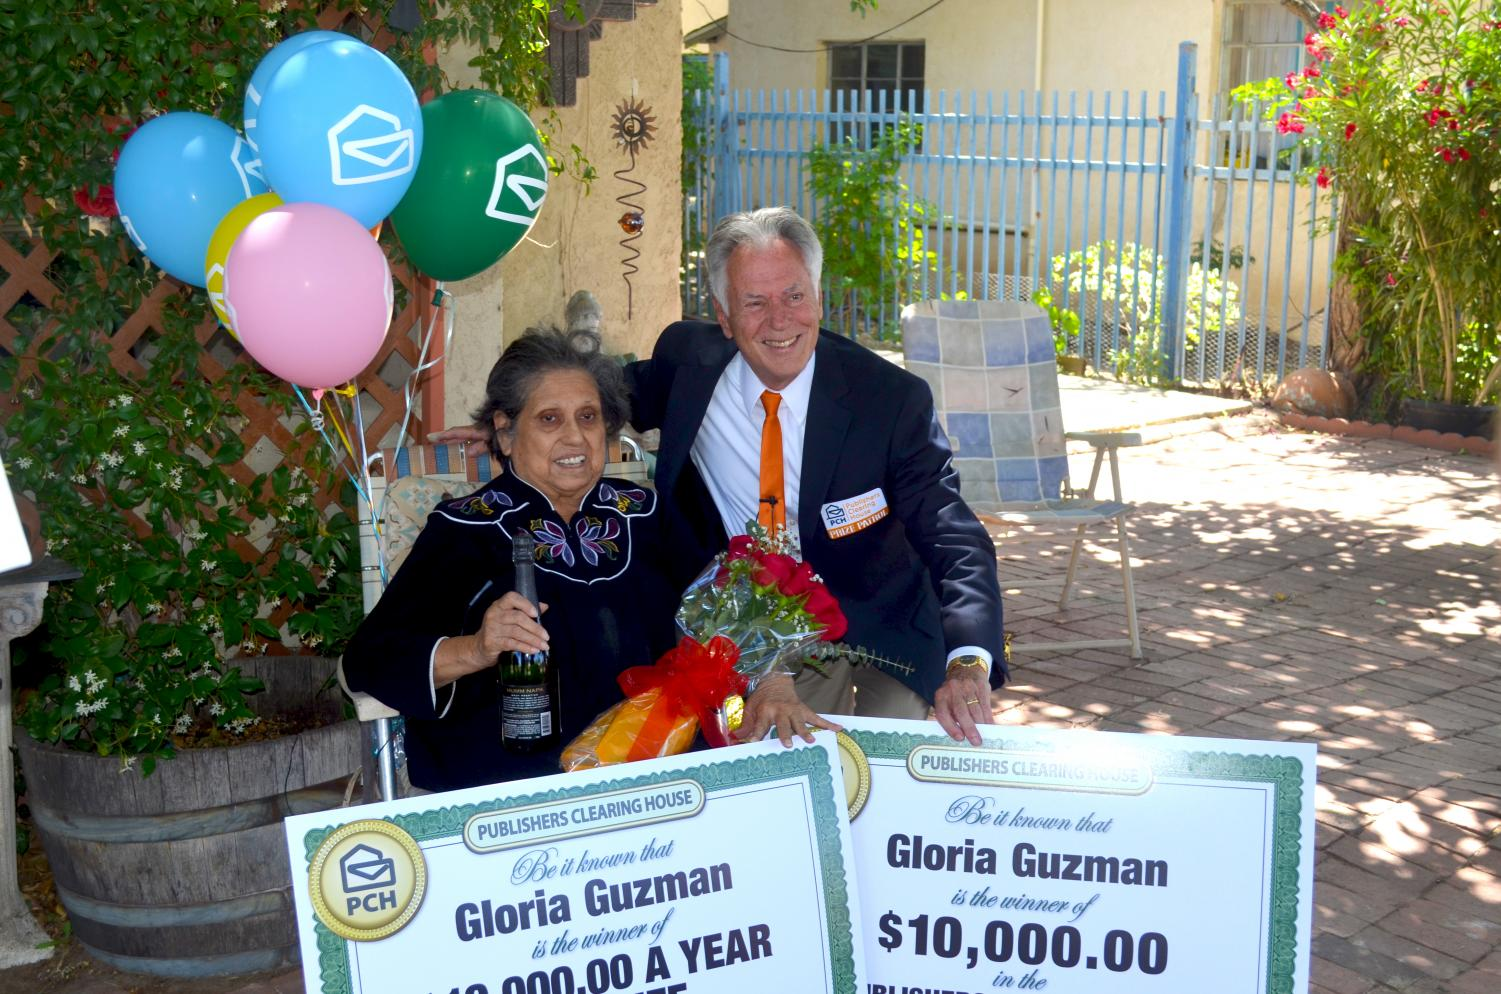 Las Cruces resident wins big in sweepstakes – The Prospector